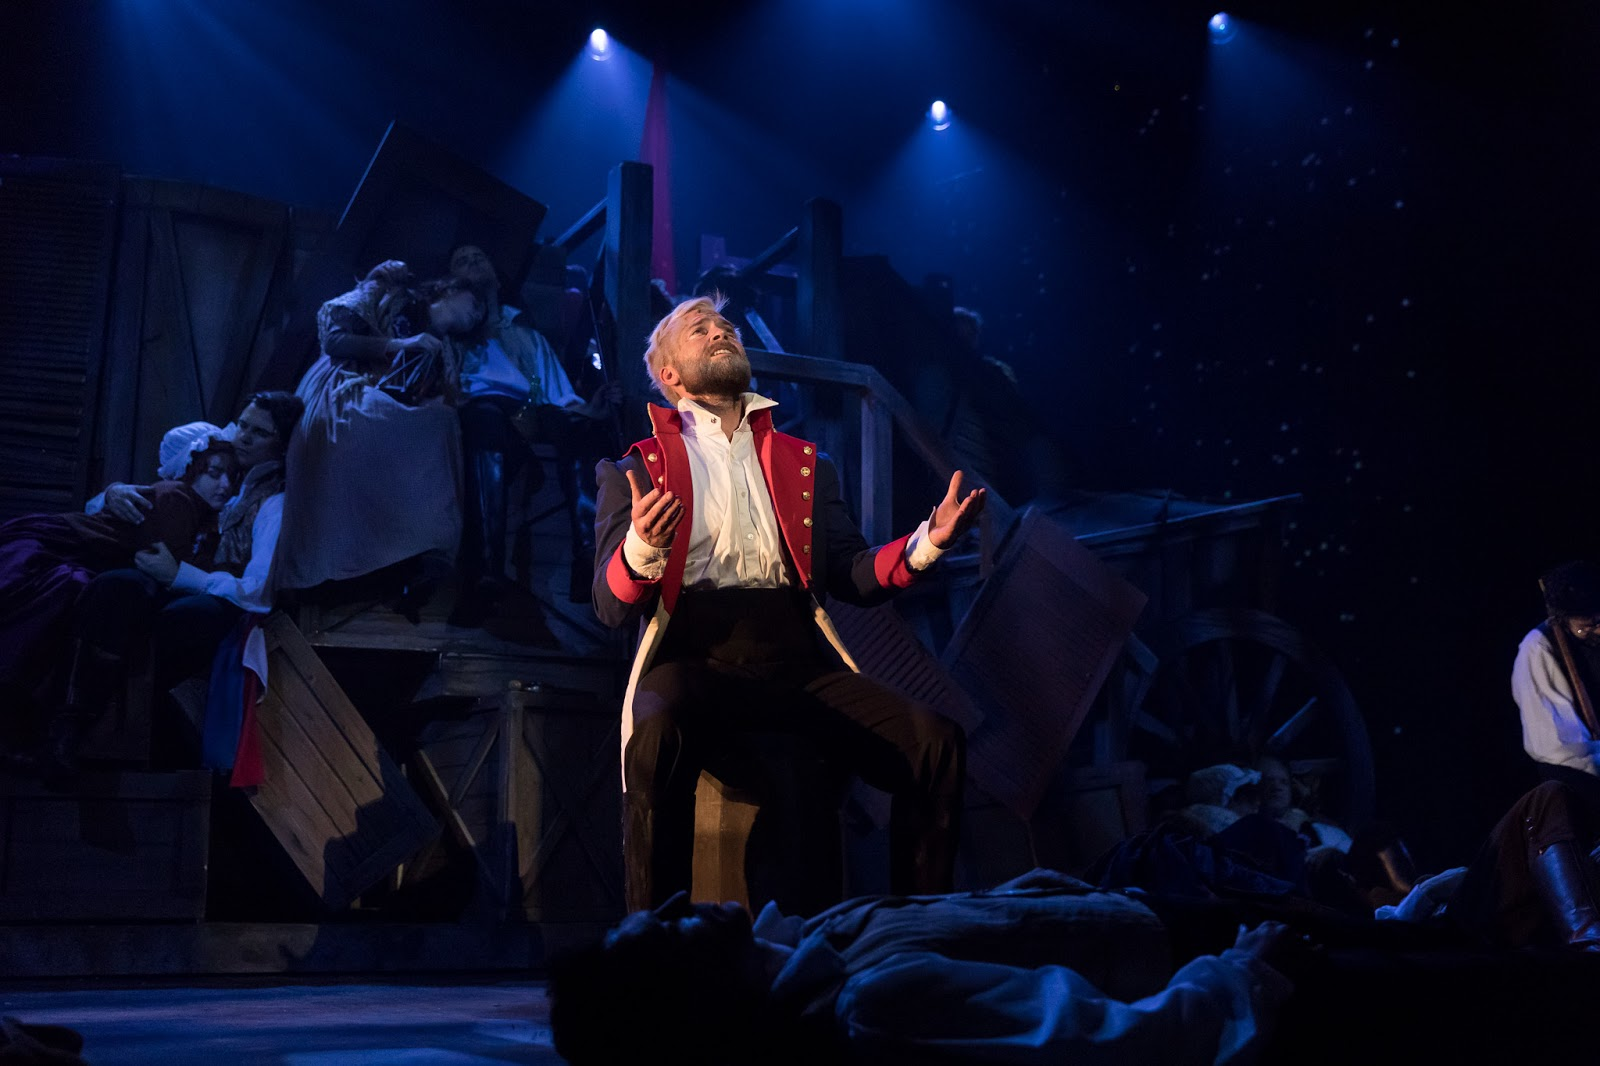 Regional Roundup: Top New Features This Week Around Our Broadway World 5/26 - DIRTY DANCING, LES MIS, WICKED, and More!